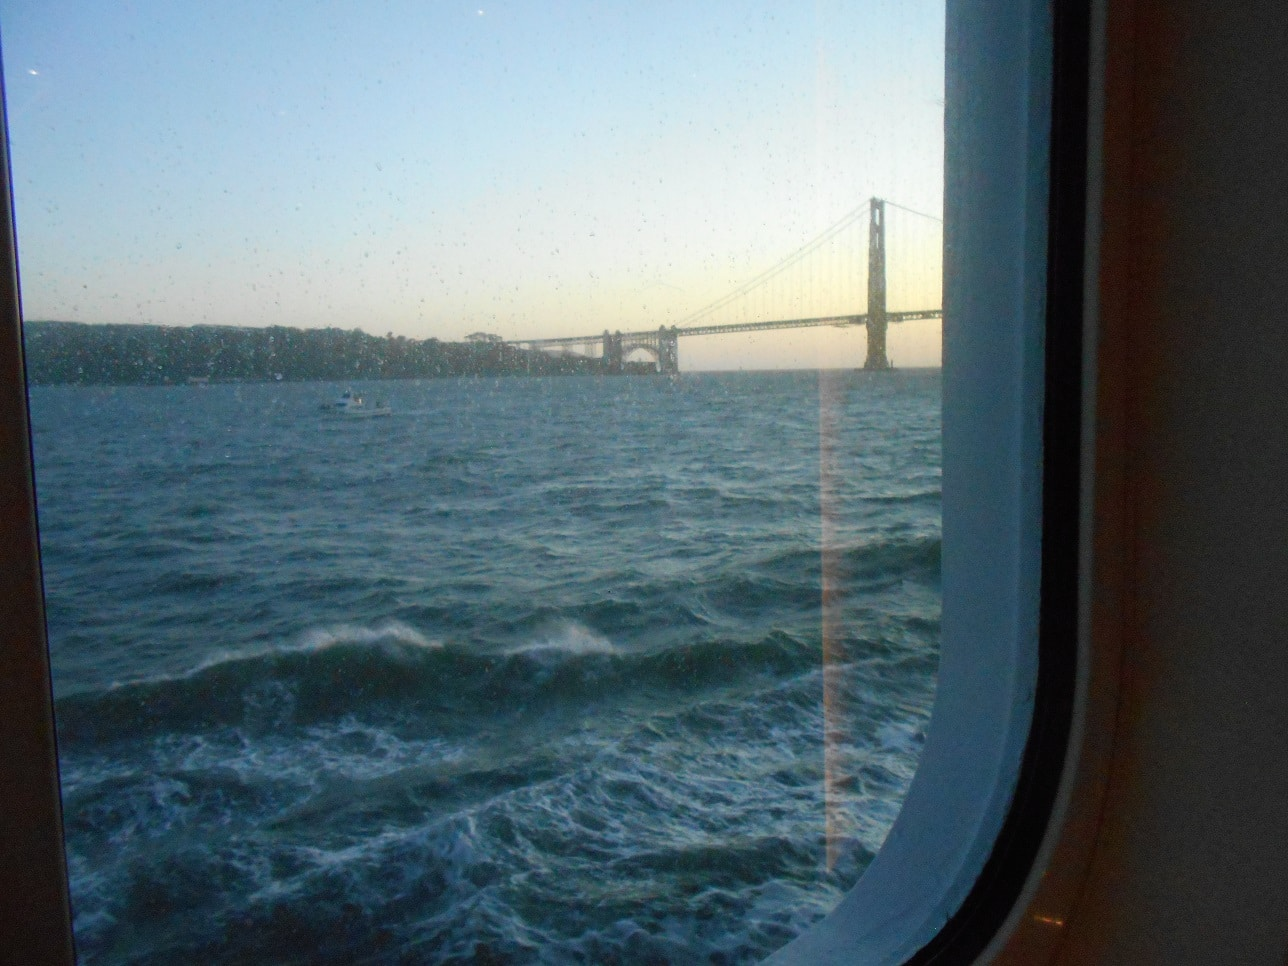 Leaving SFO on Regent Seven Seas Mariner